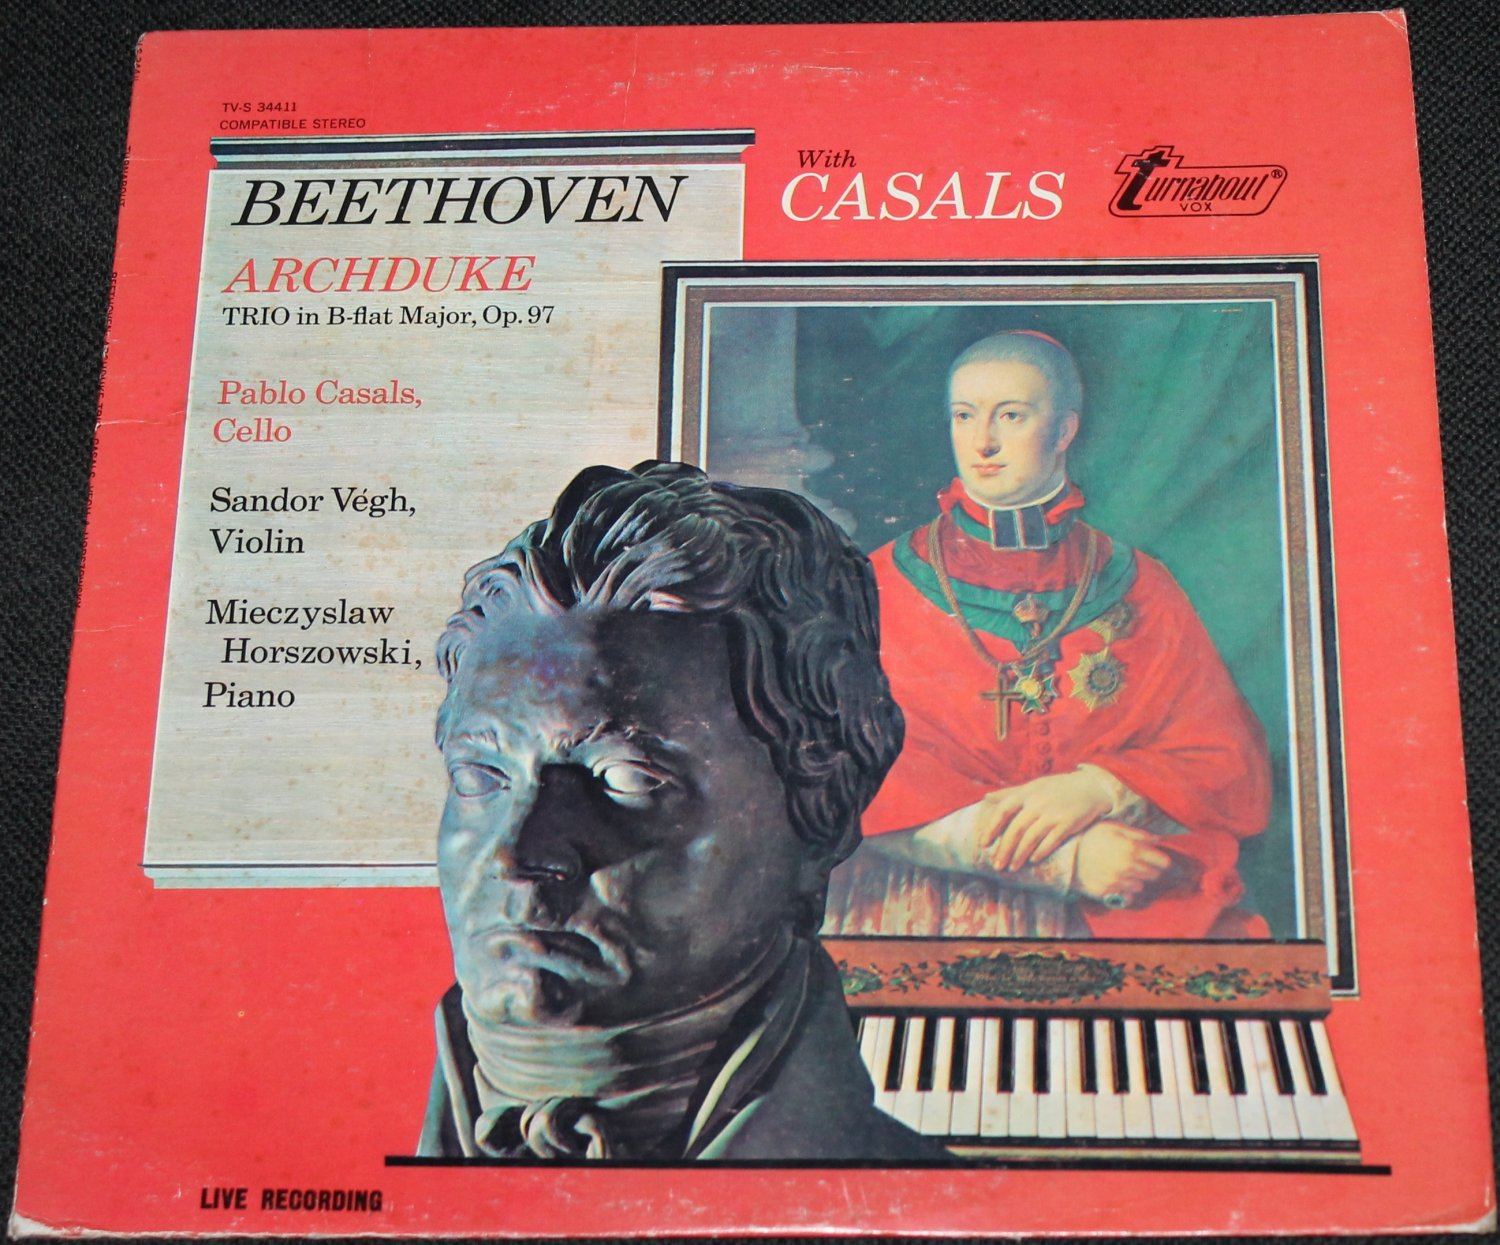 Beethoven With Casals - record